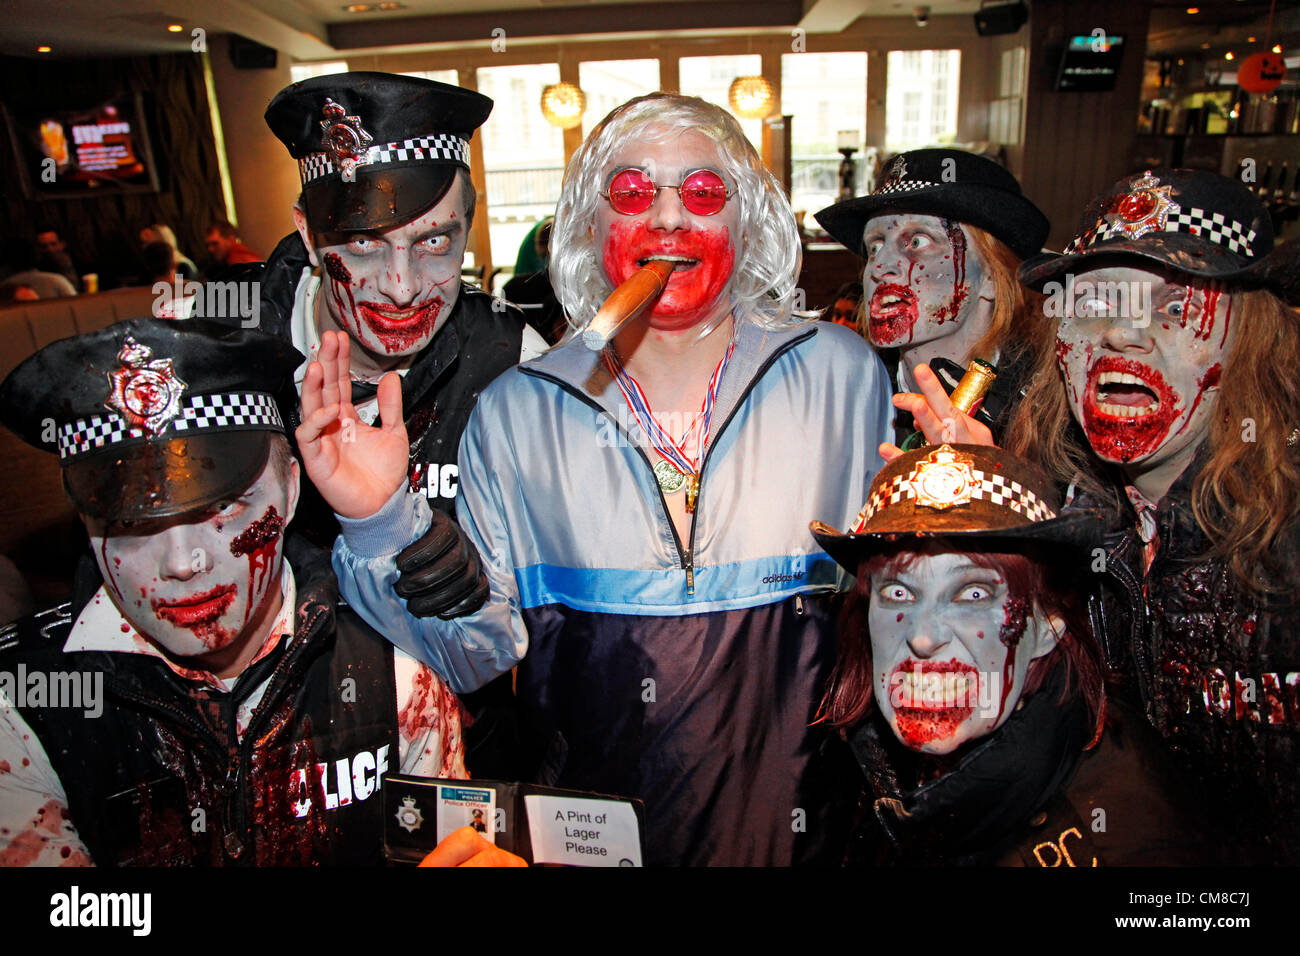 London, UK. 27th October 2012. People Dressed Up As Police Zombies With An